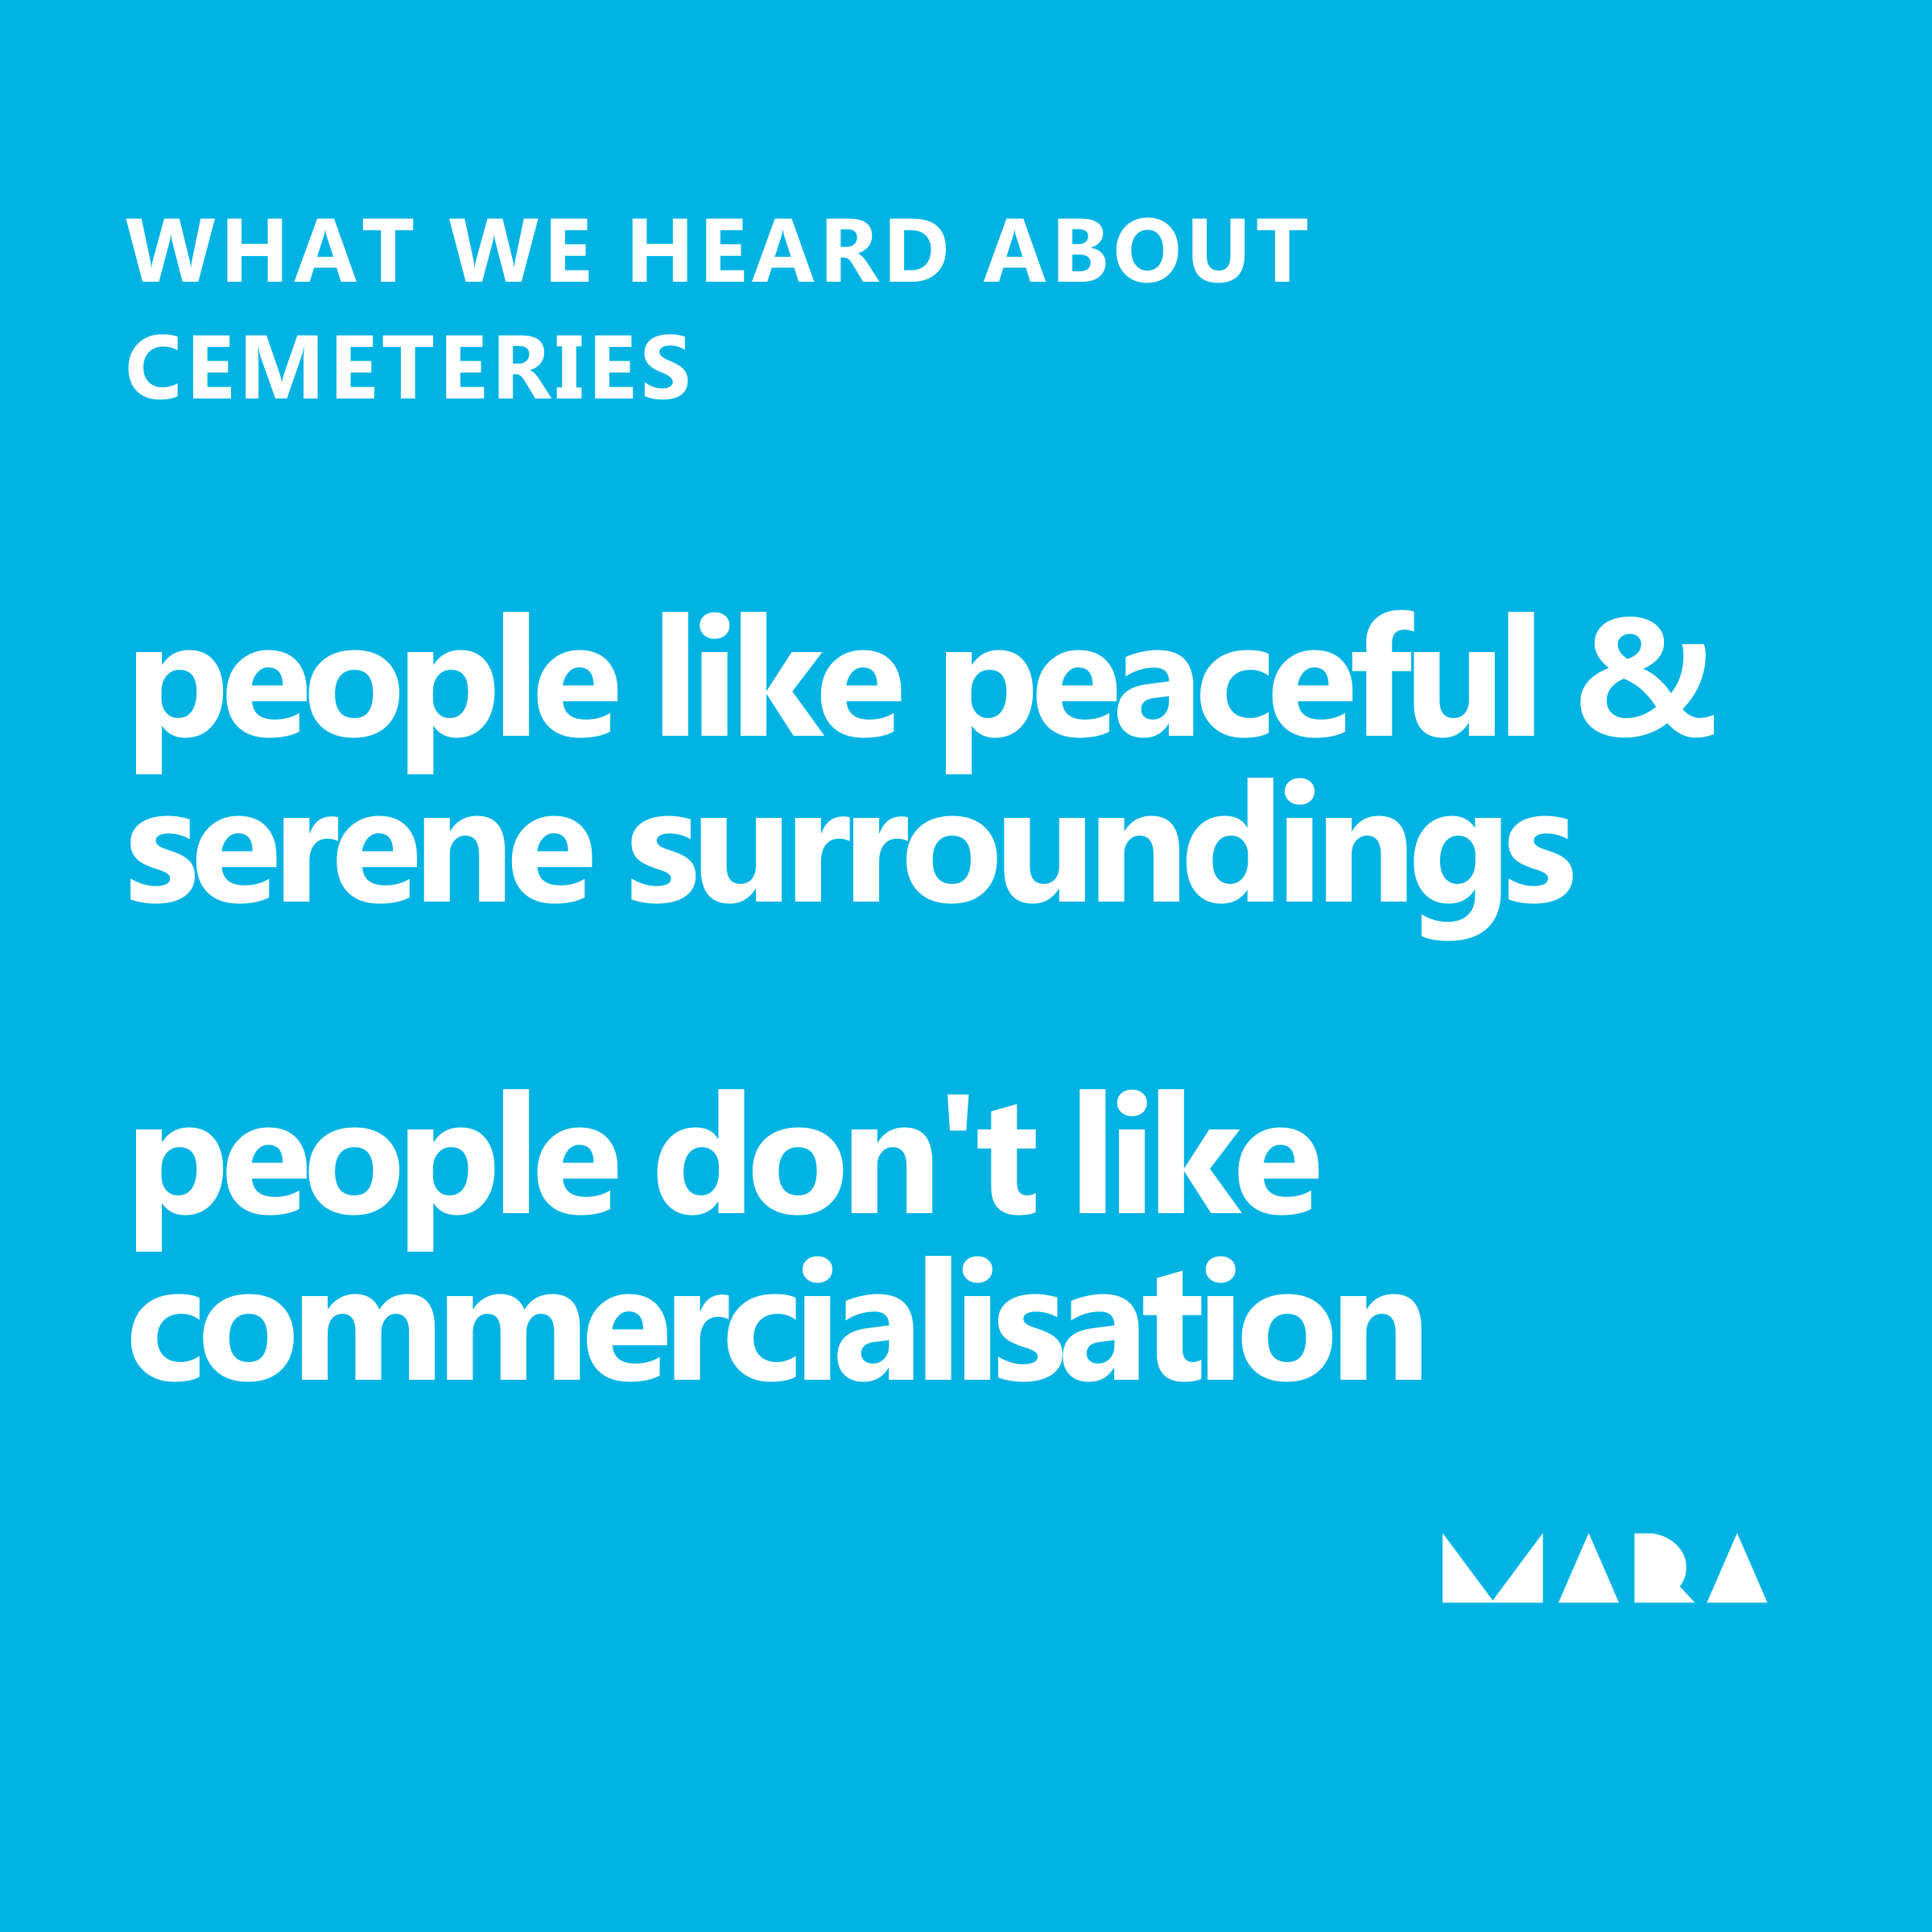 Northern Cemeteries - what people like